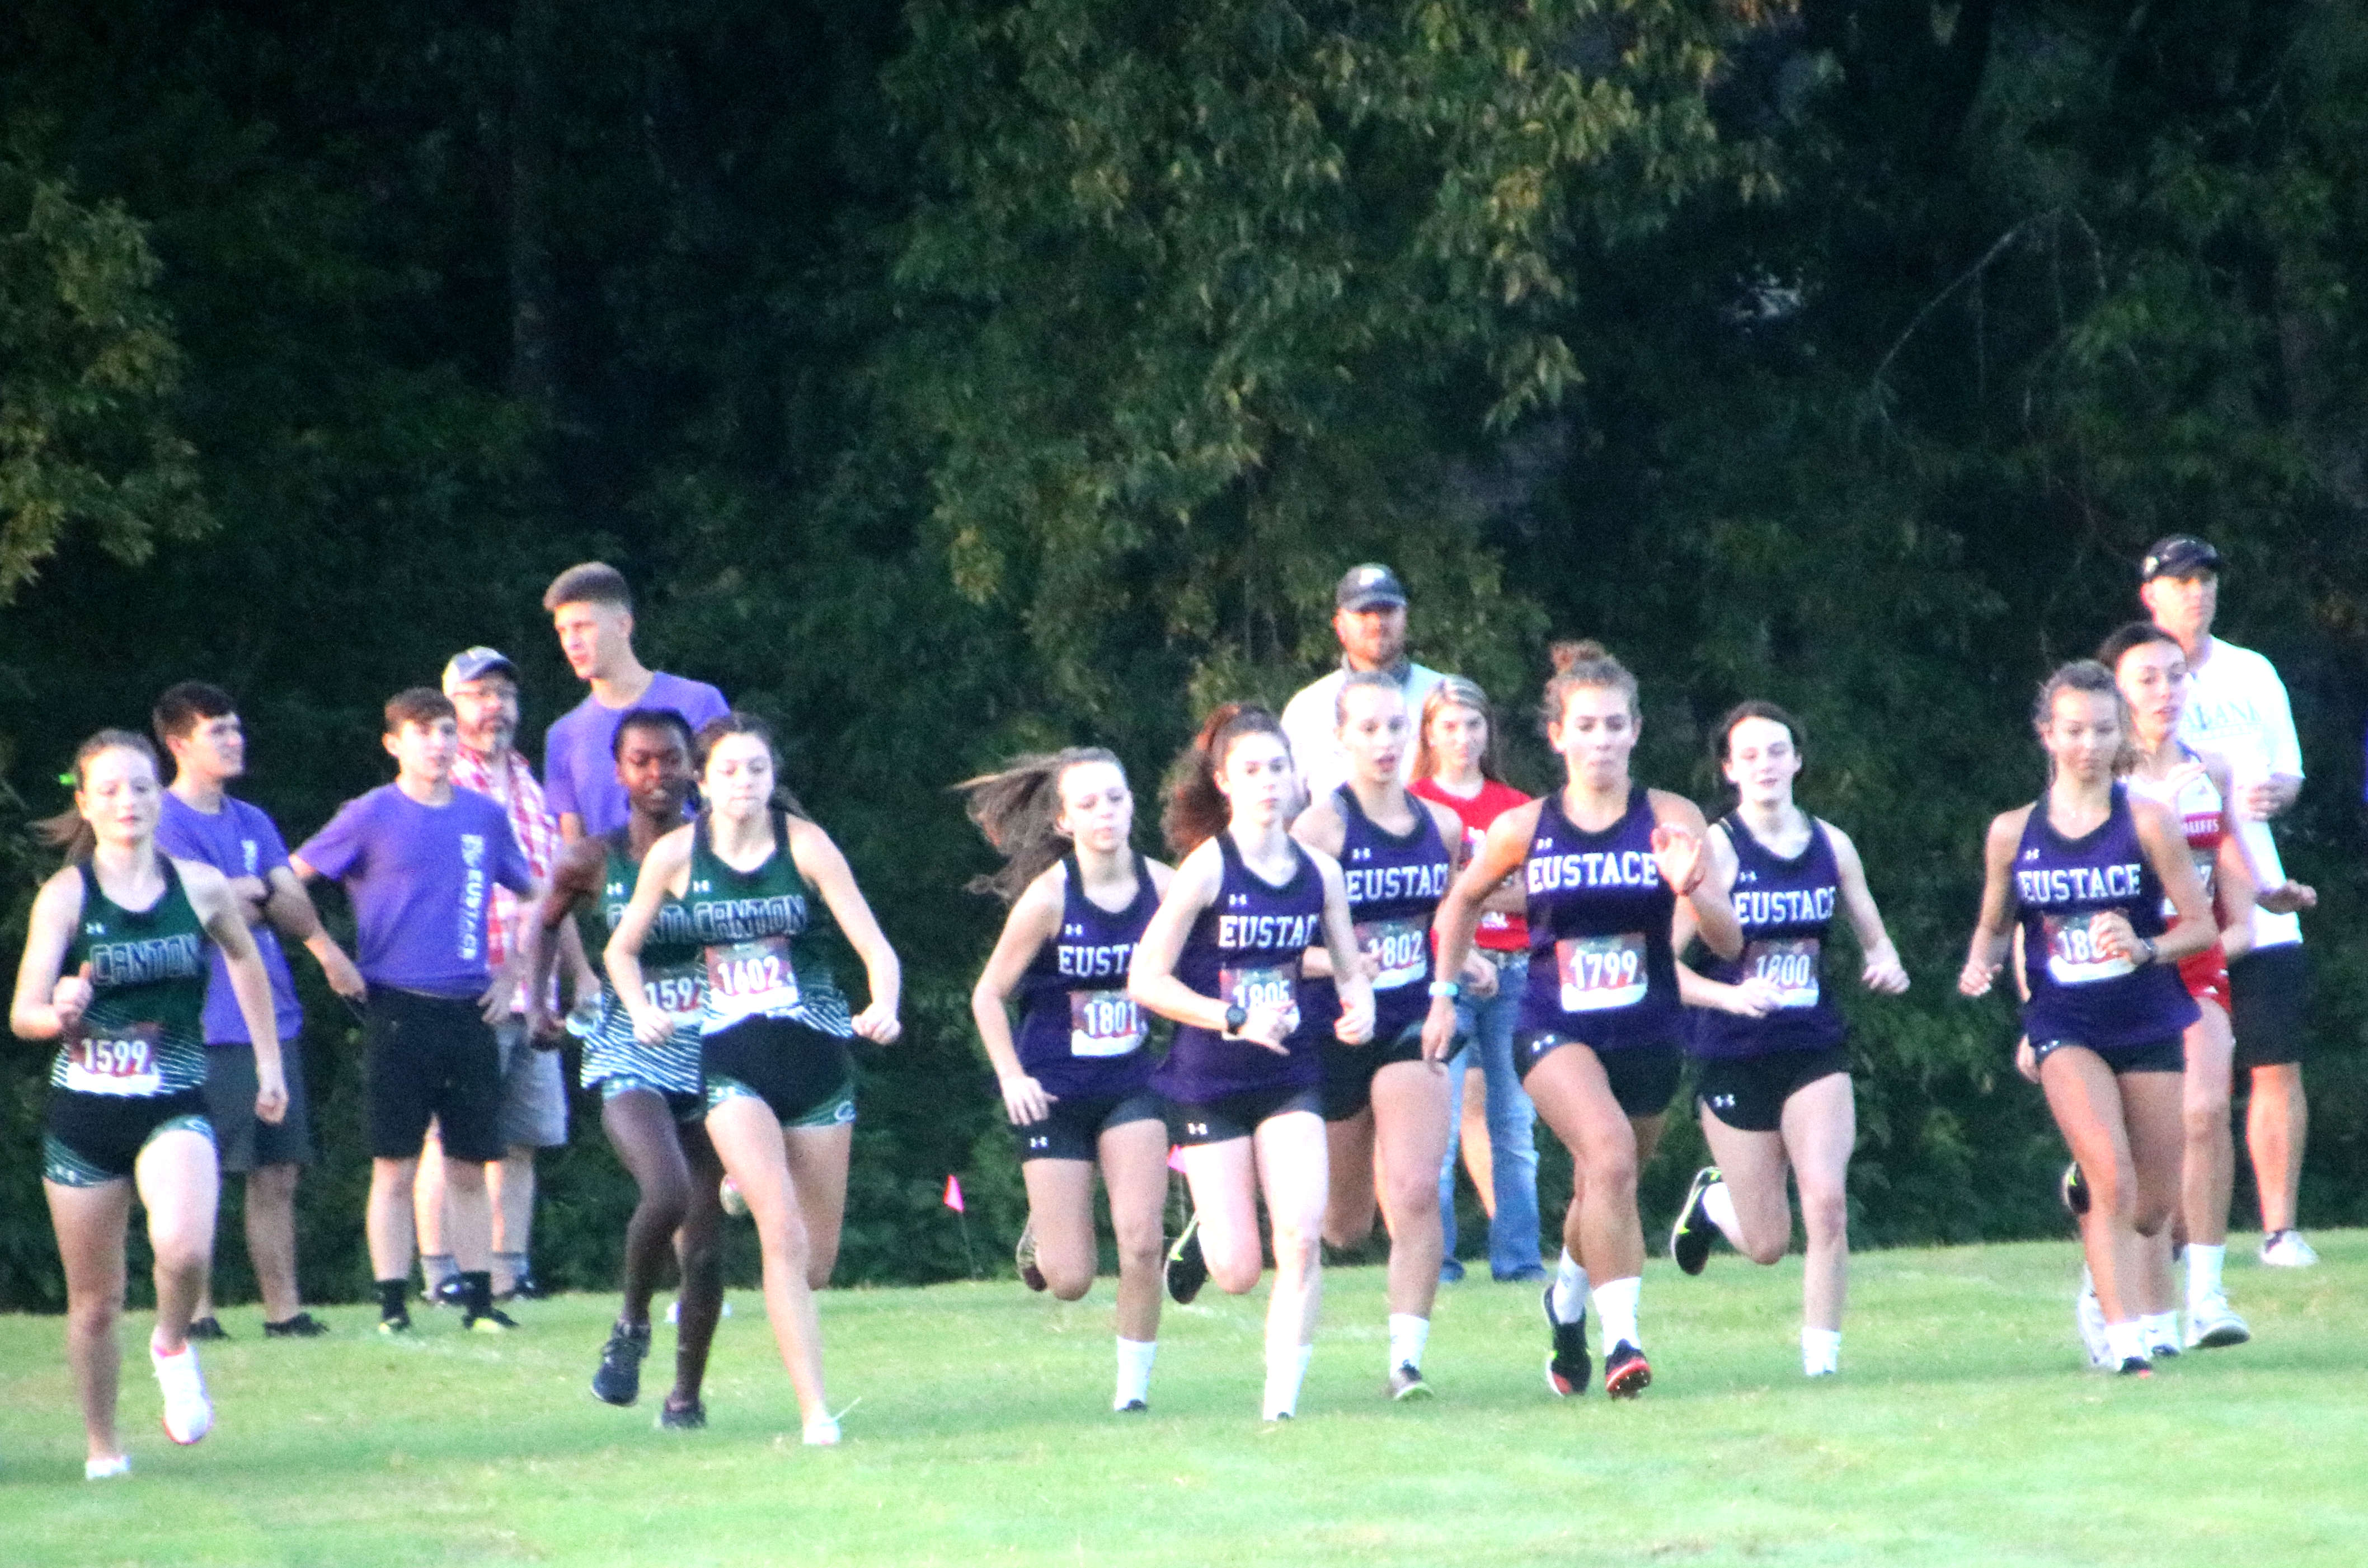 Cross country competes on 8/28.